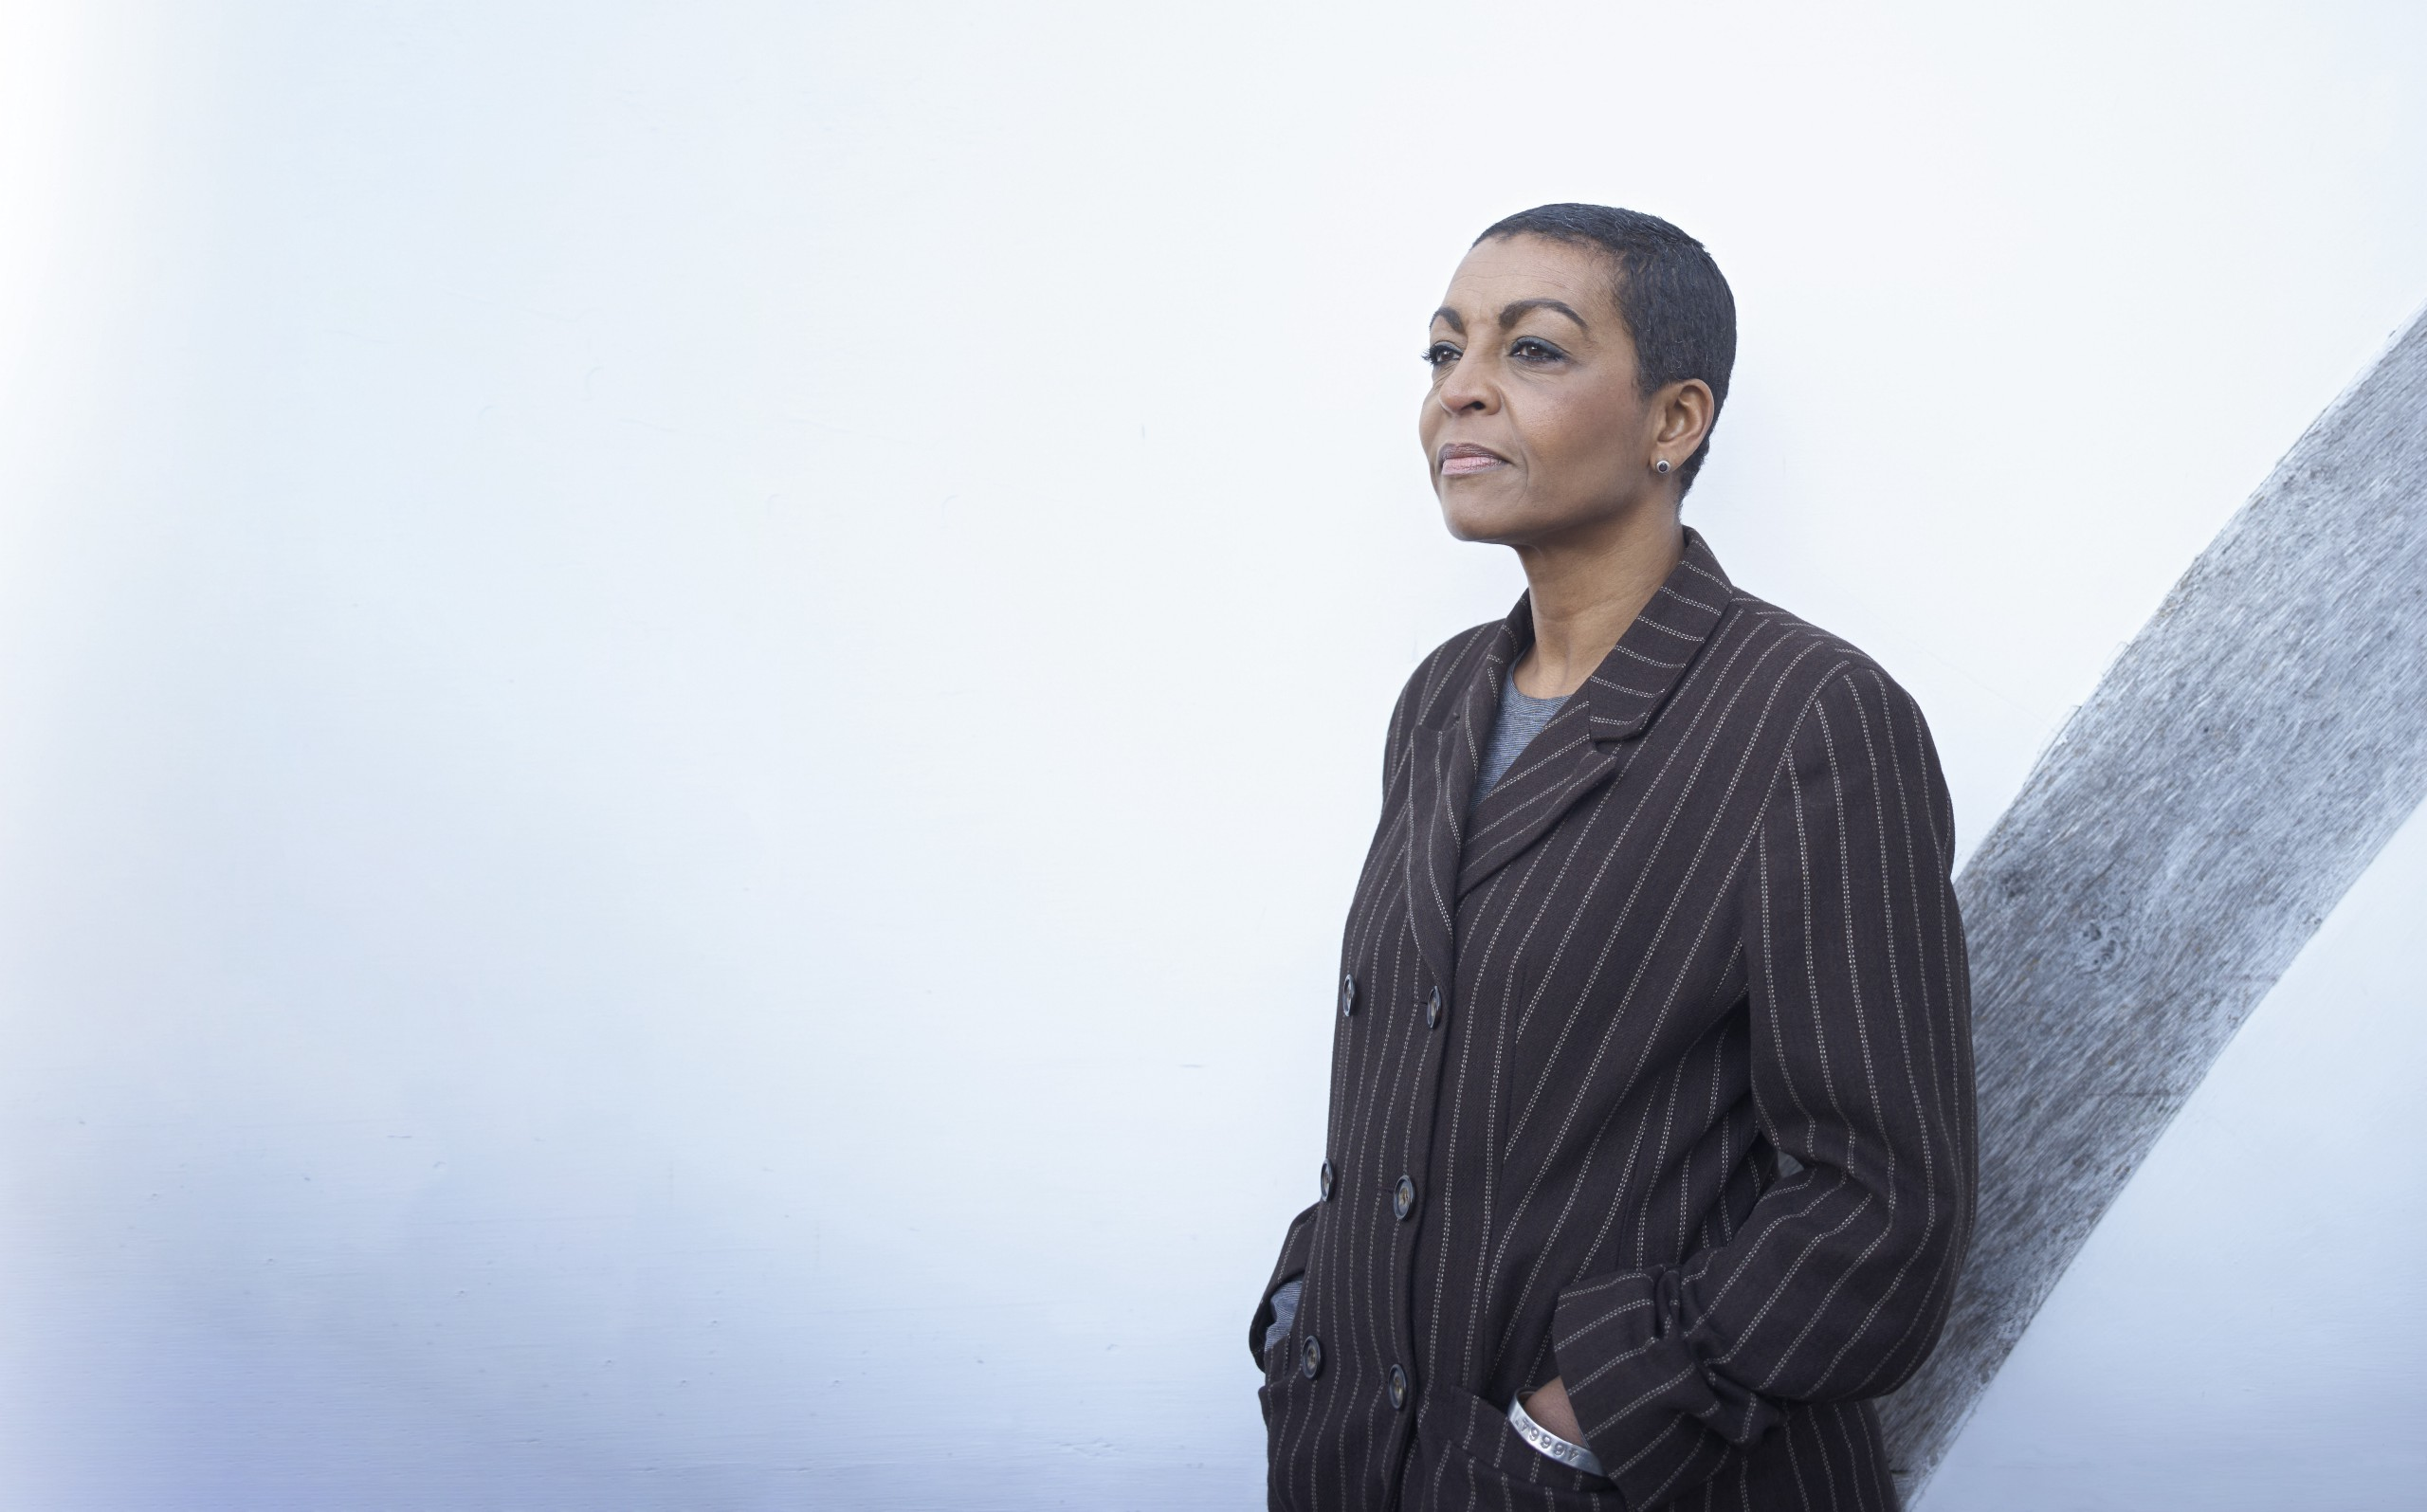 A black woman with short cropped hair stands against a white wall wearing a dark pinstripe suite.